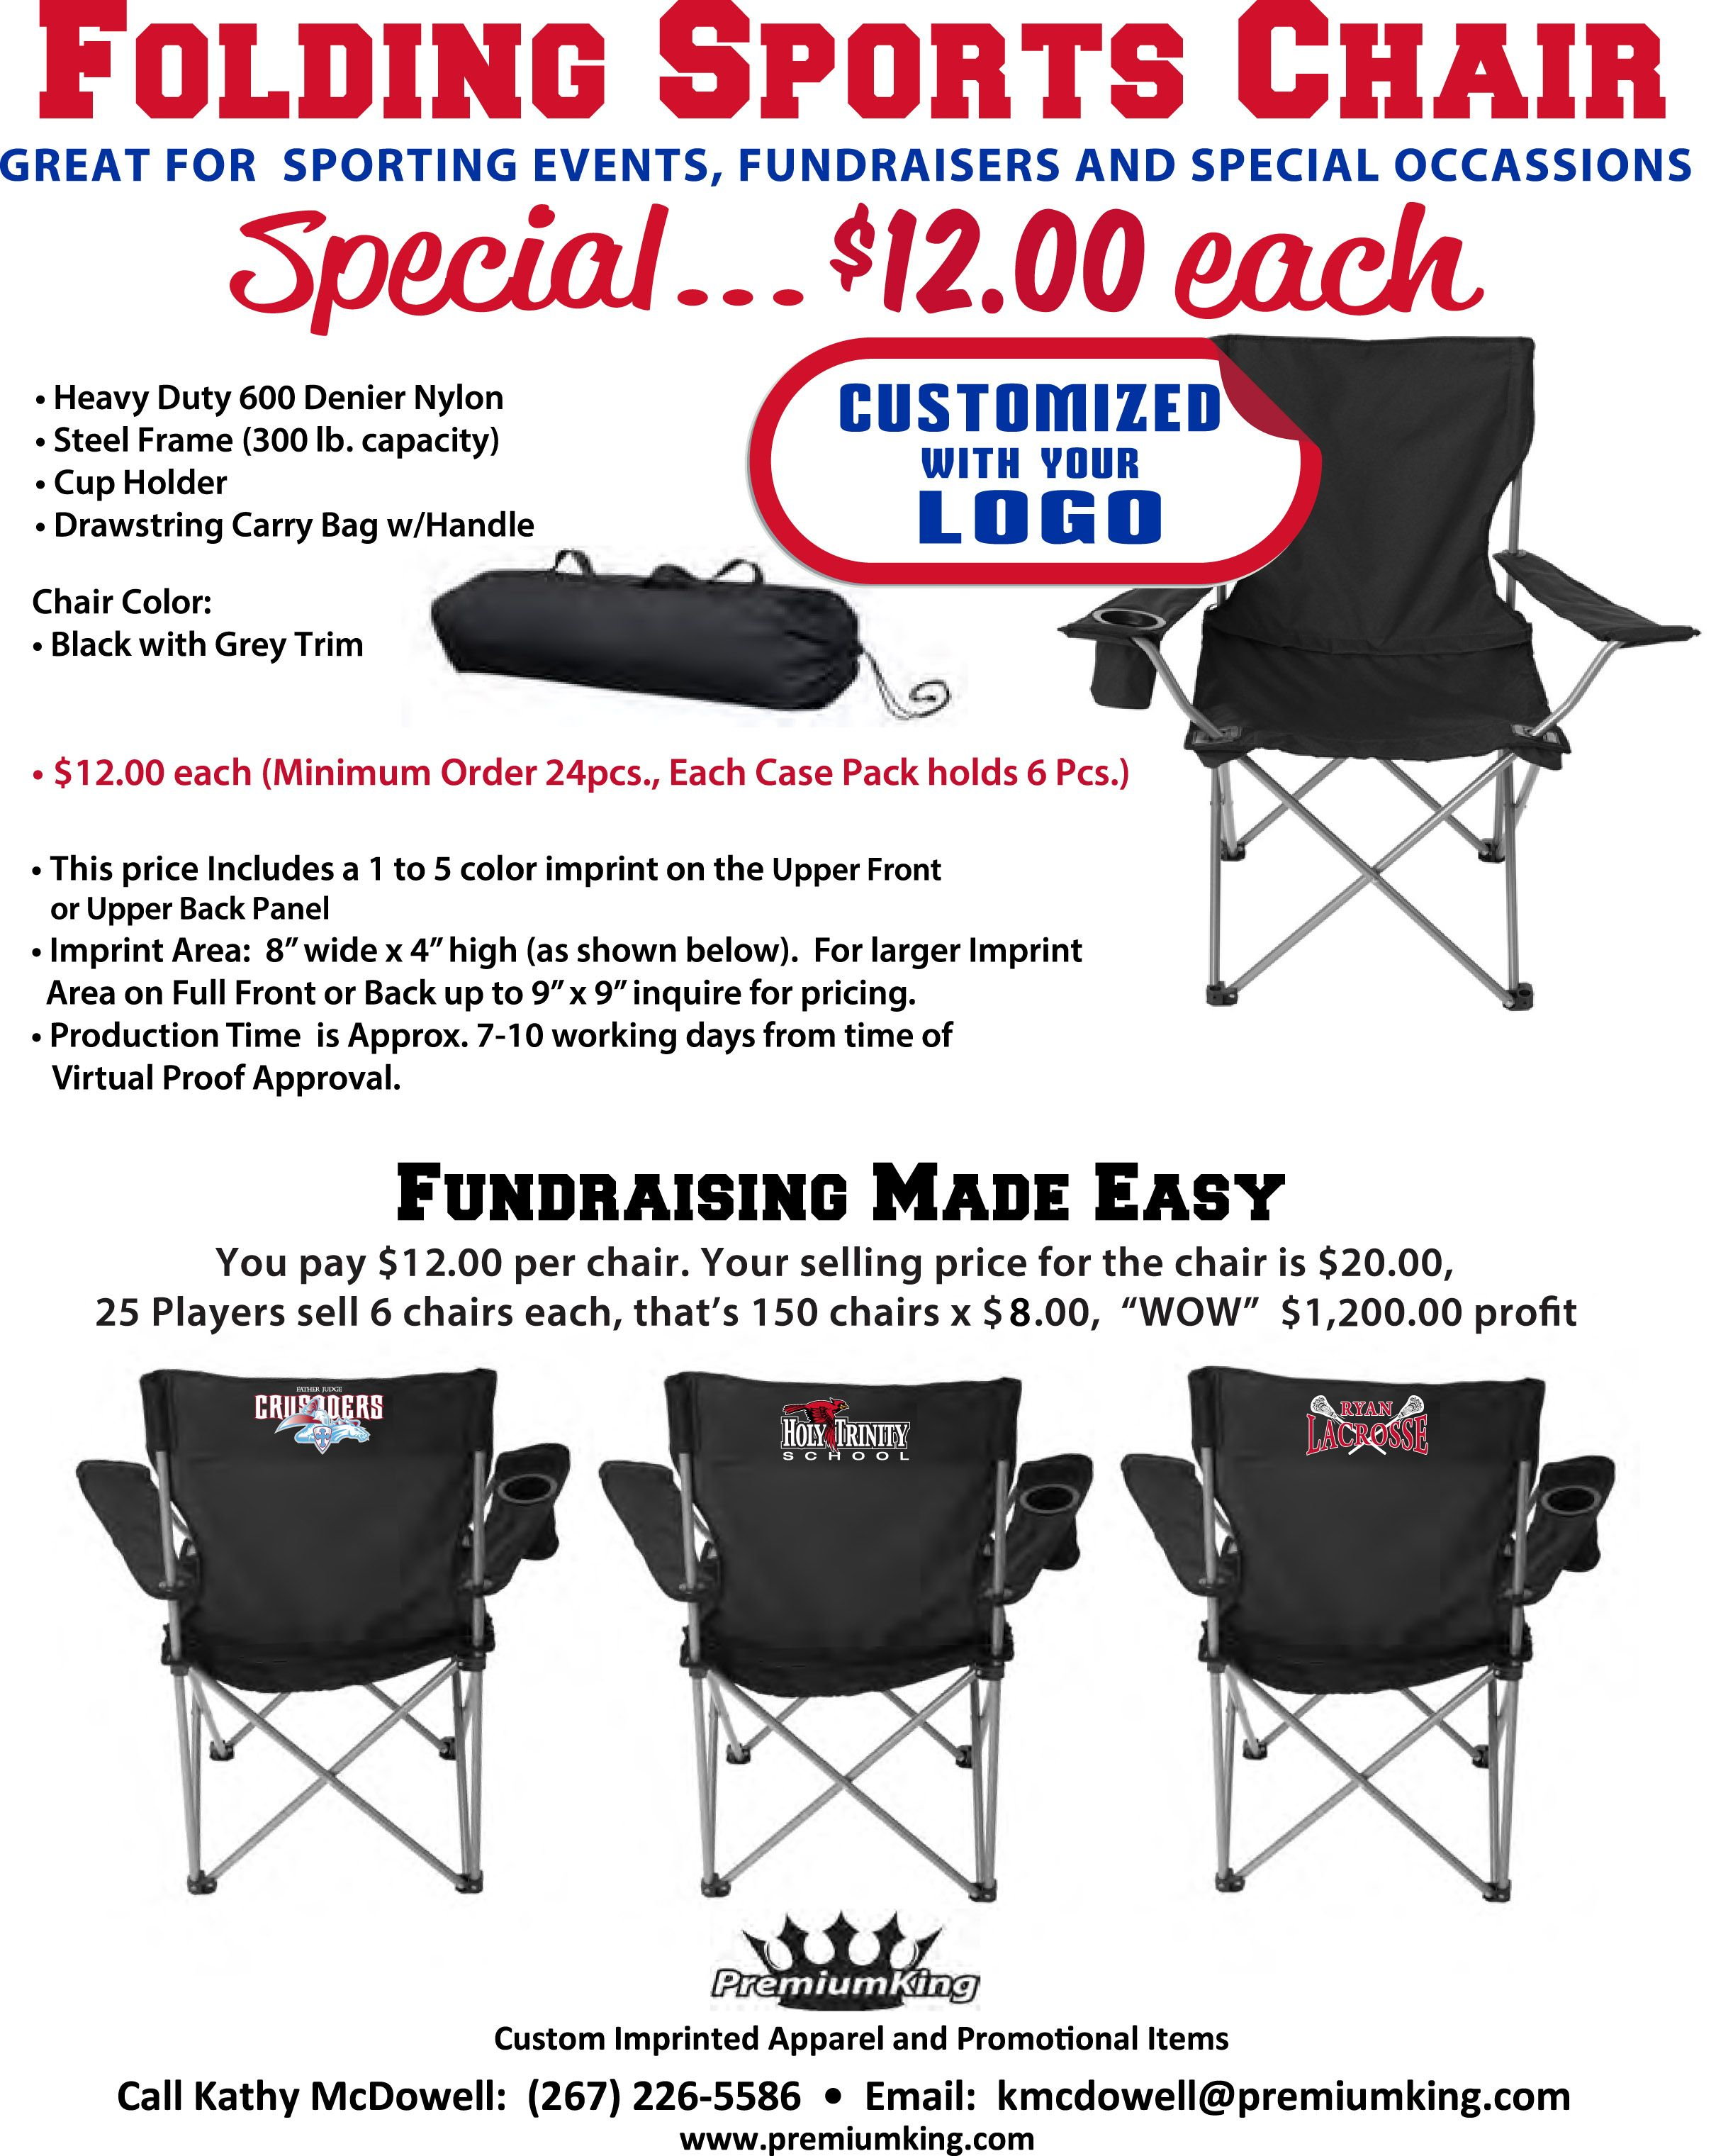 fundraiser idea - folding sports chairs with team logo | fundraising